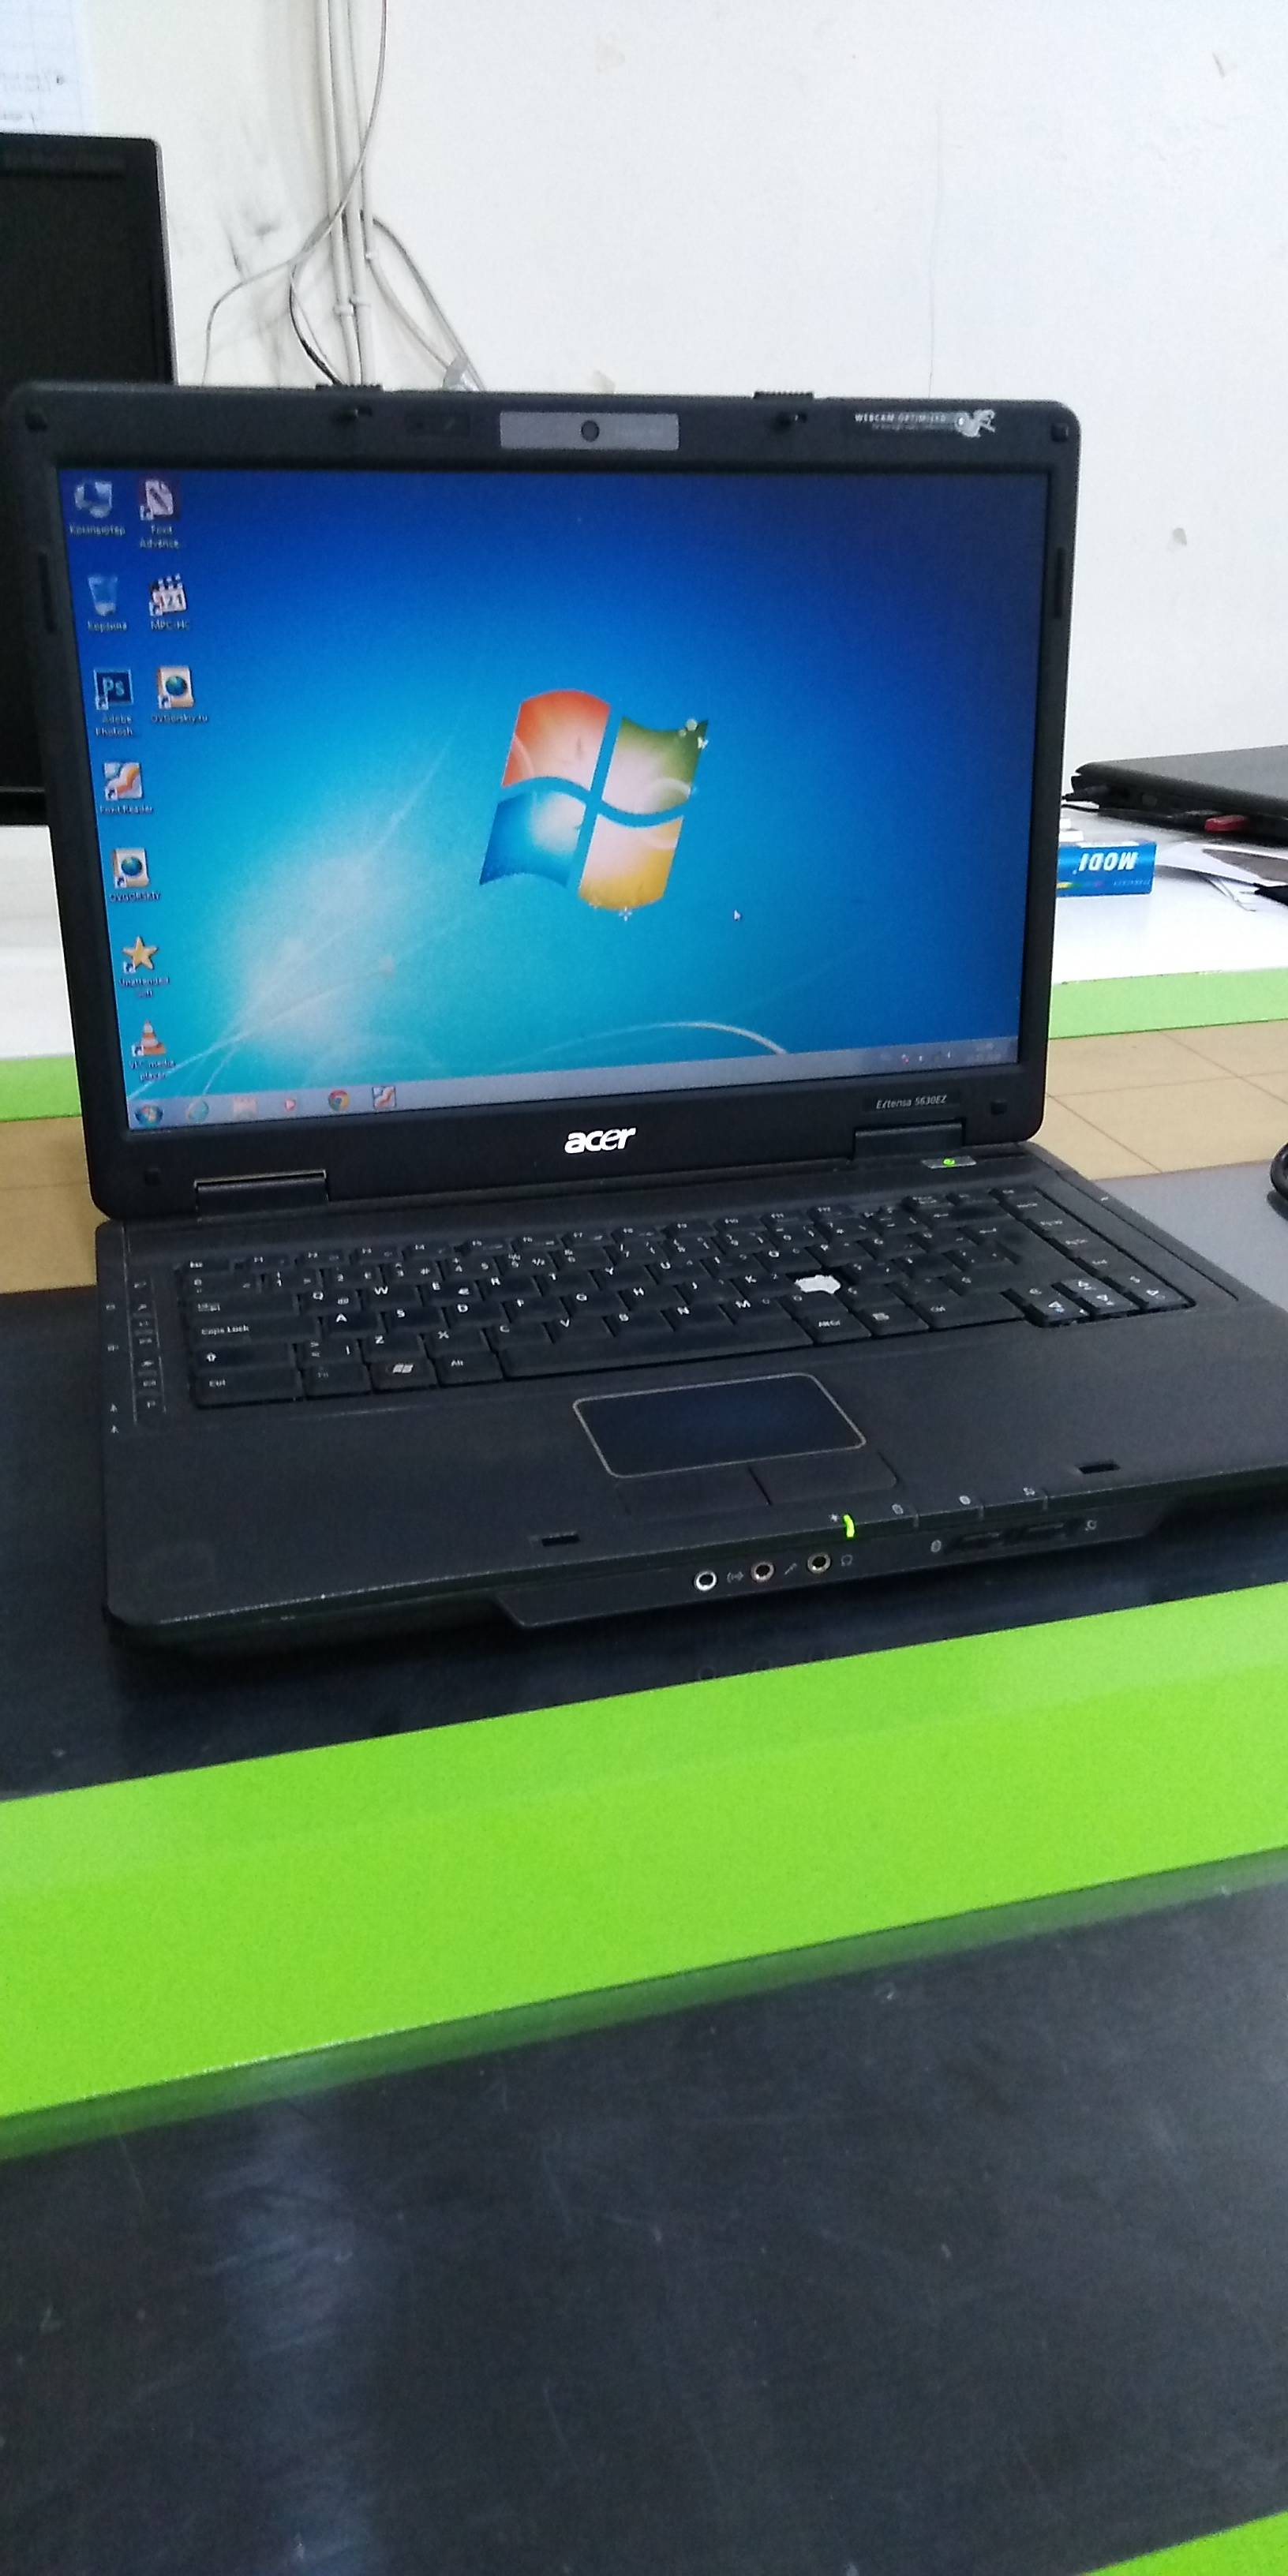 Dual 2 Core 2.00 GHZ, RAM 2GB, HDD 160 GB, WebCamera,